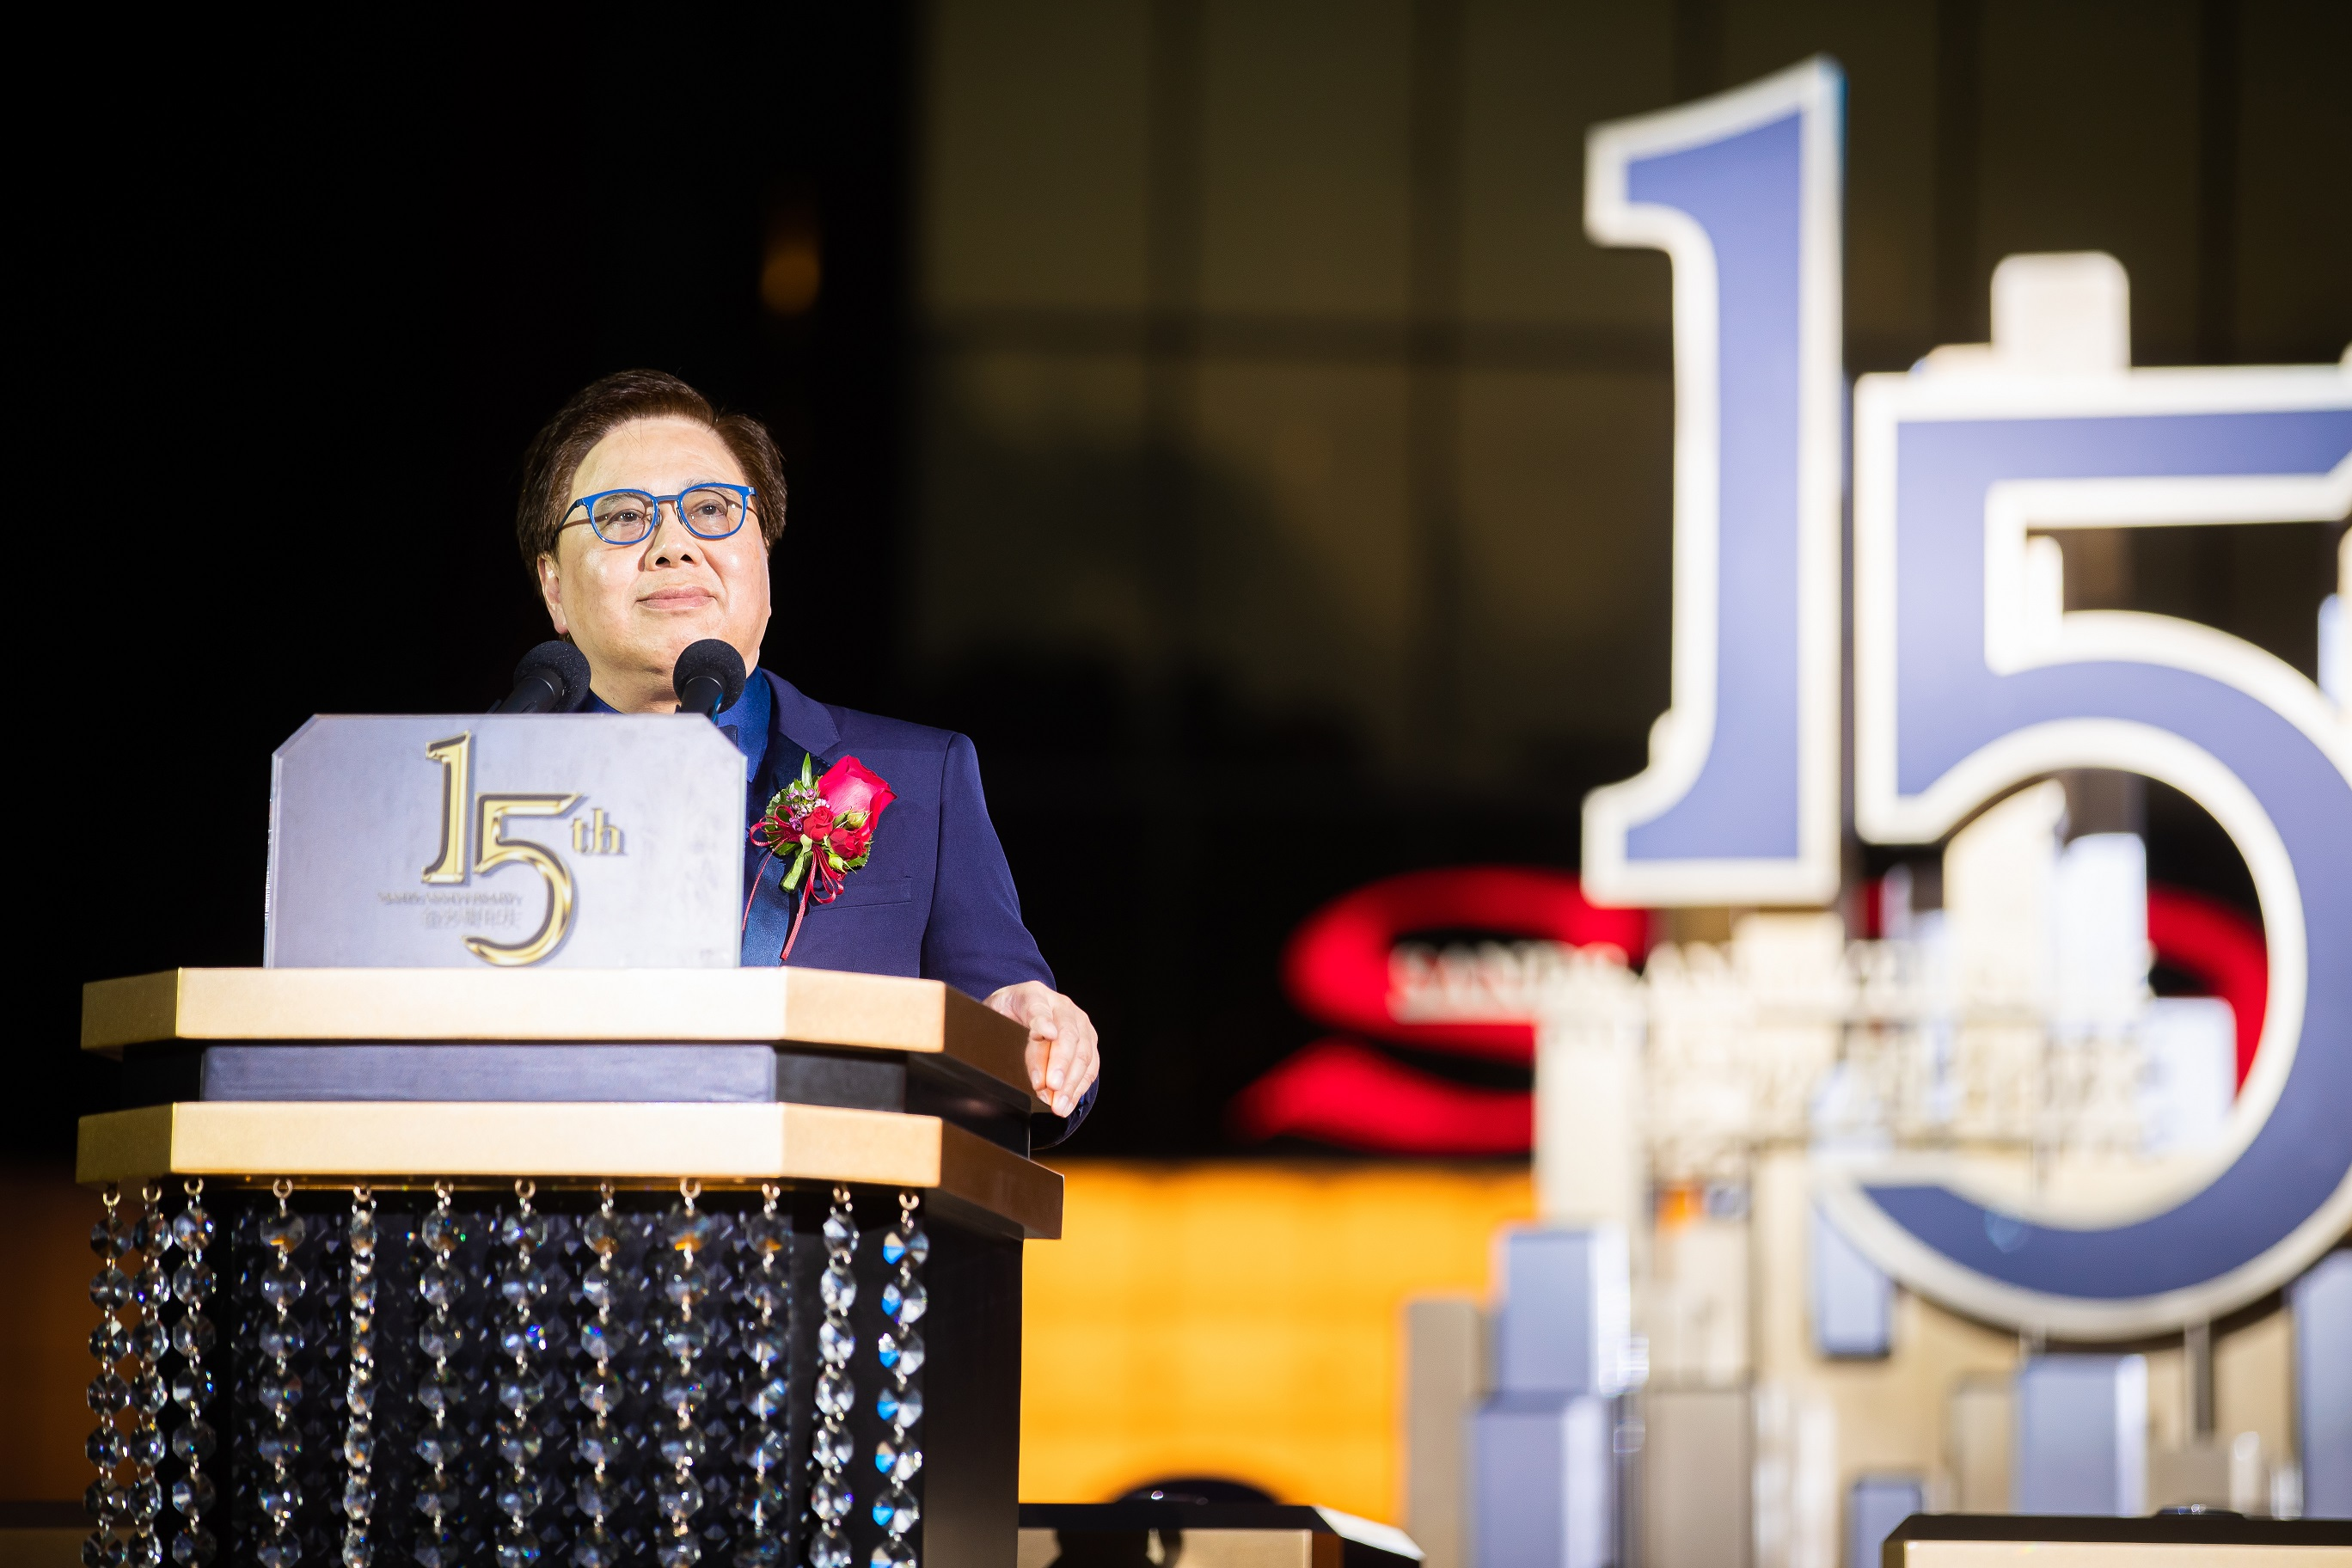 Dr. Wilfred Wong speaks at Sands Macao's 15th anniversary celebration